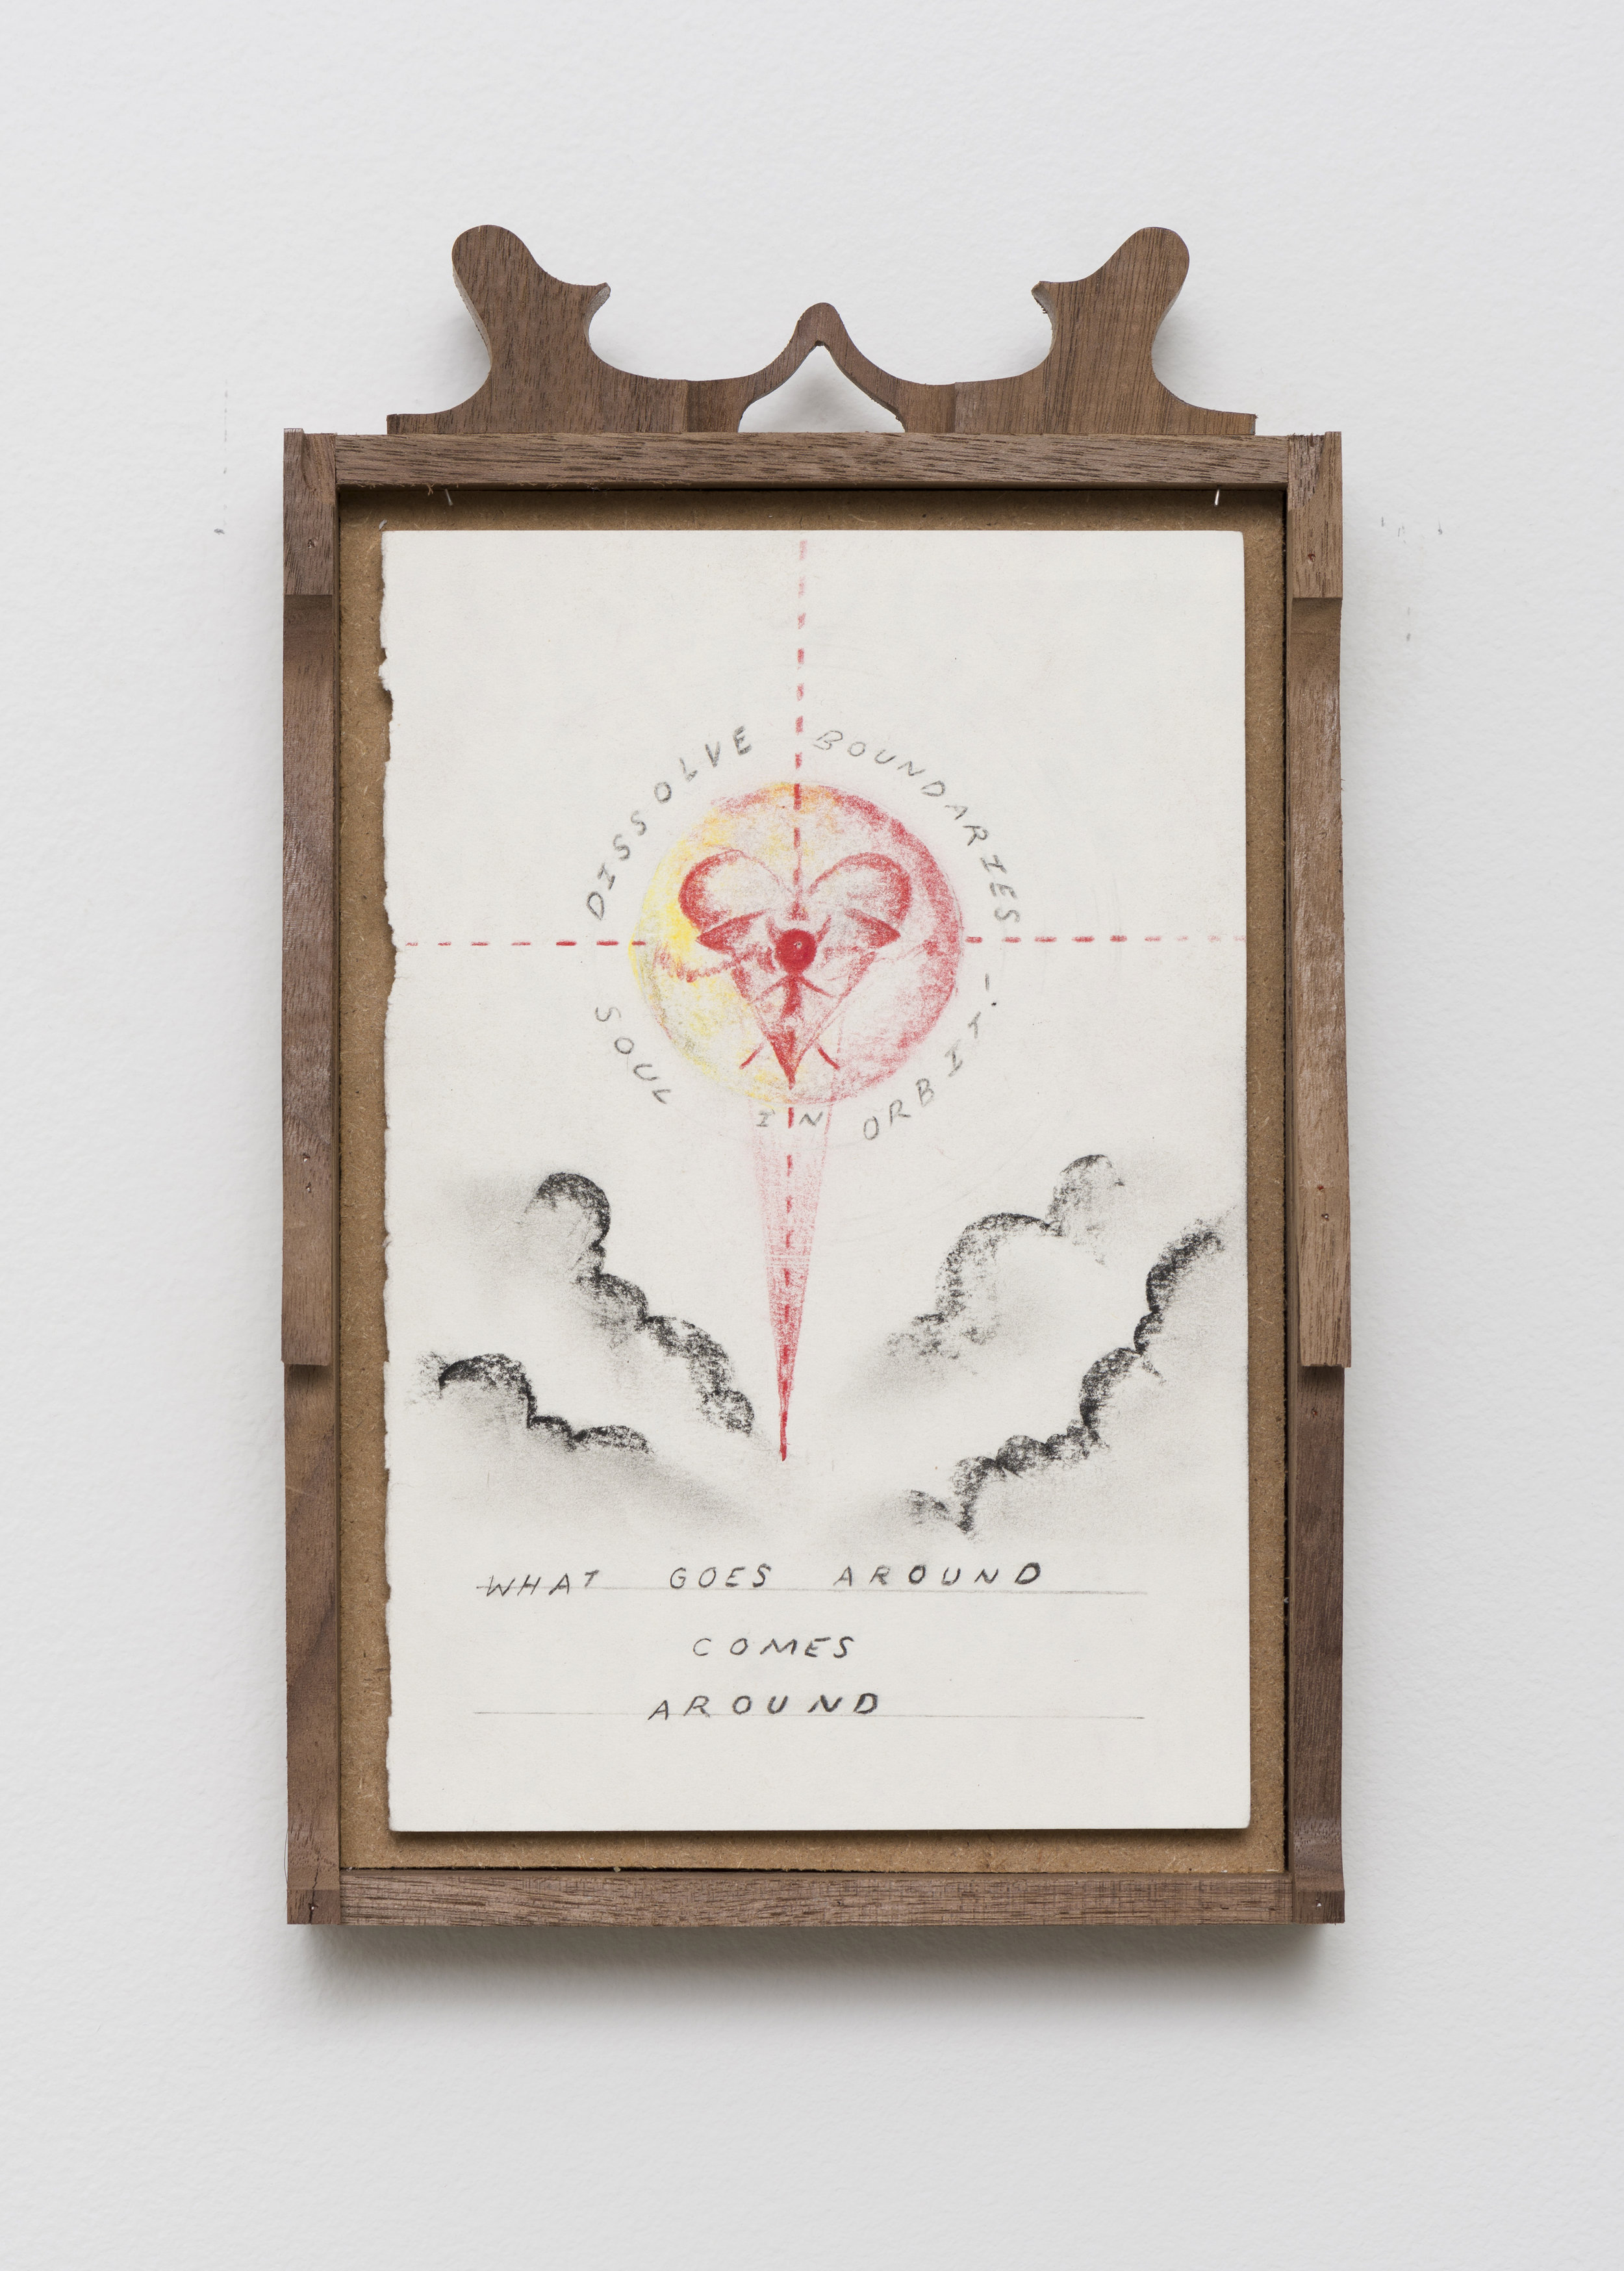 Harry Gould Harvey IV  Soul in Orbit   2019 Pencil on paper, carved walnut frame 11 x 6.75 in